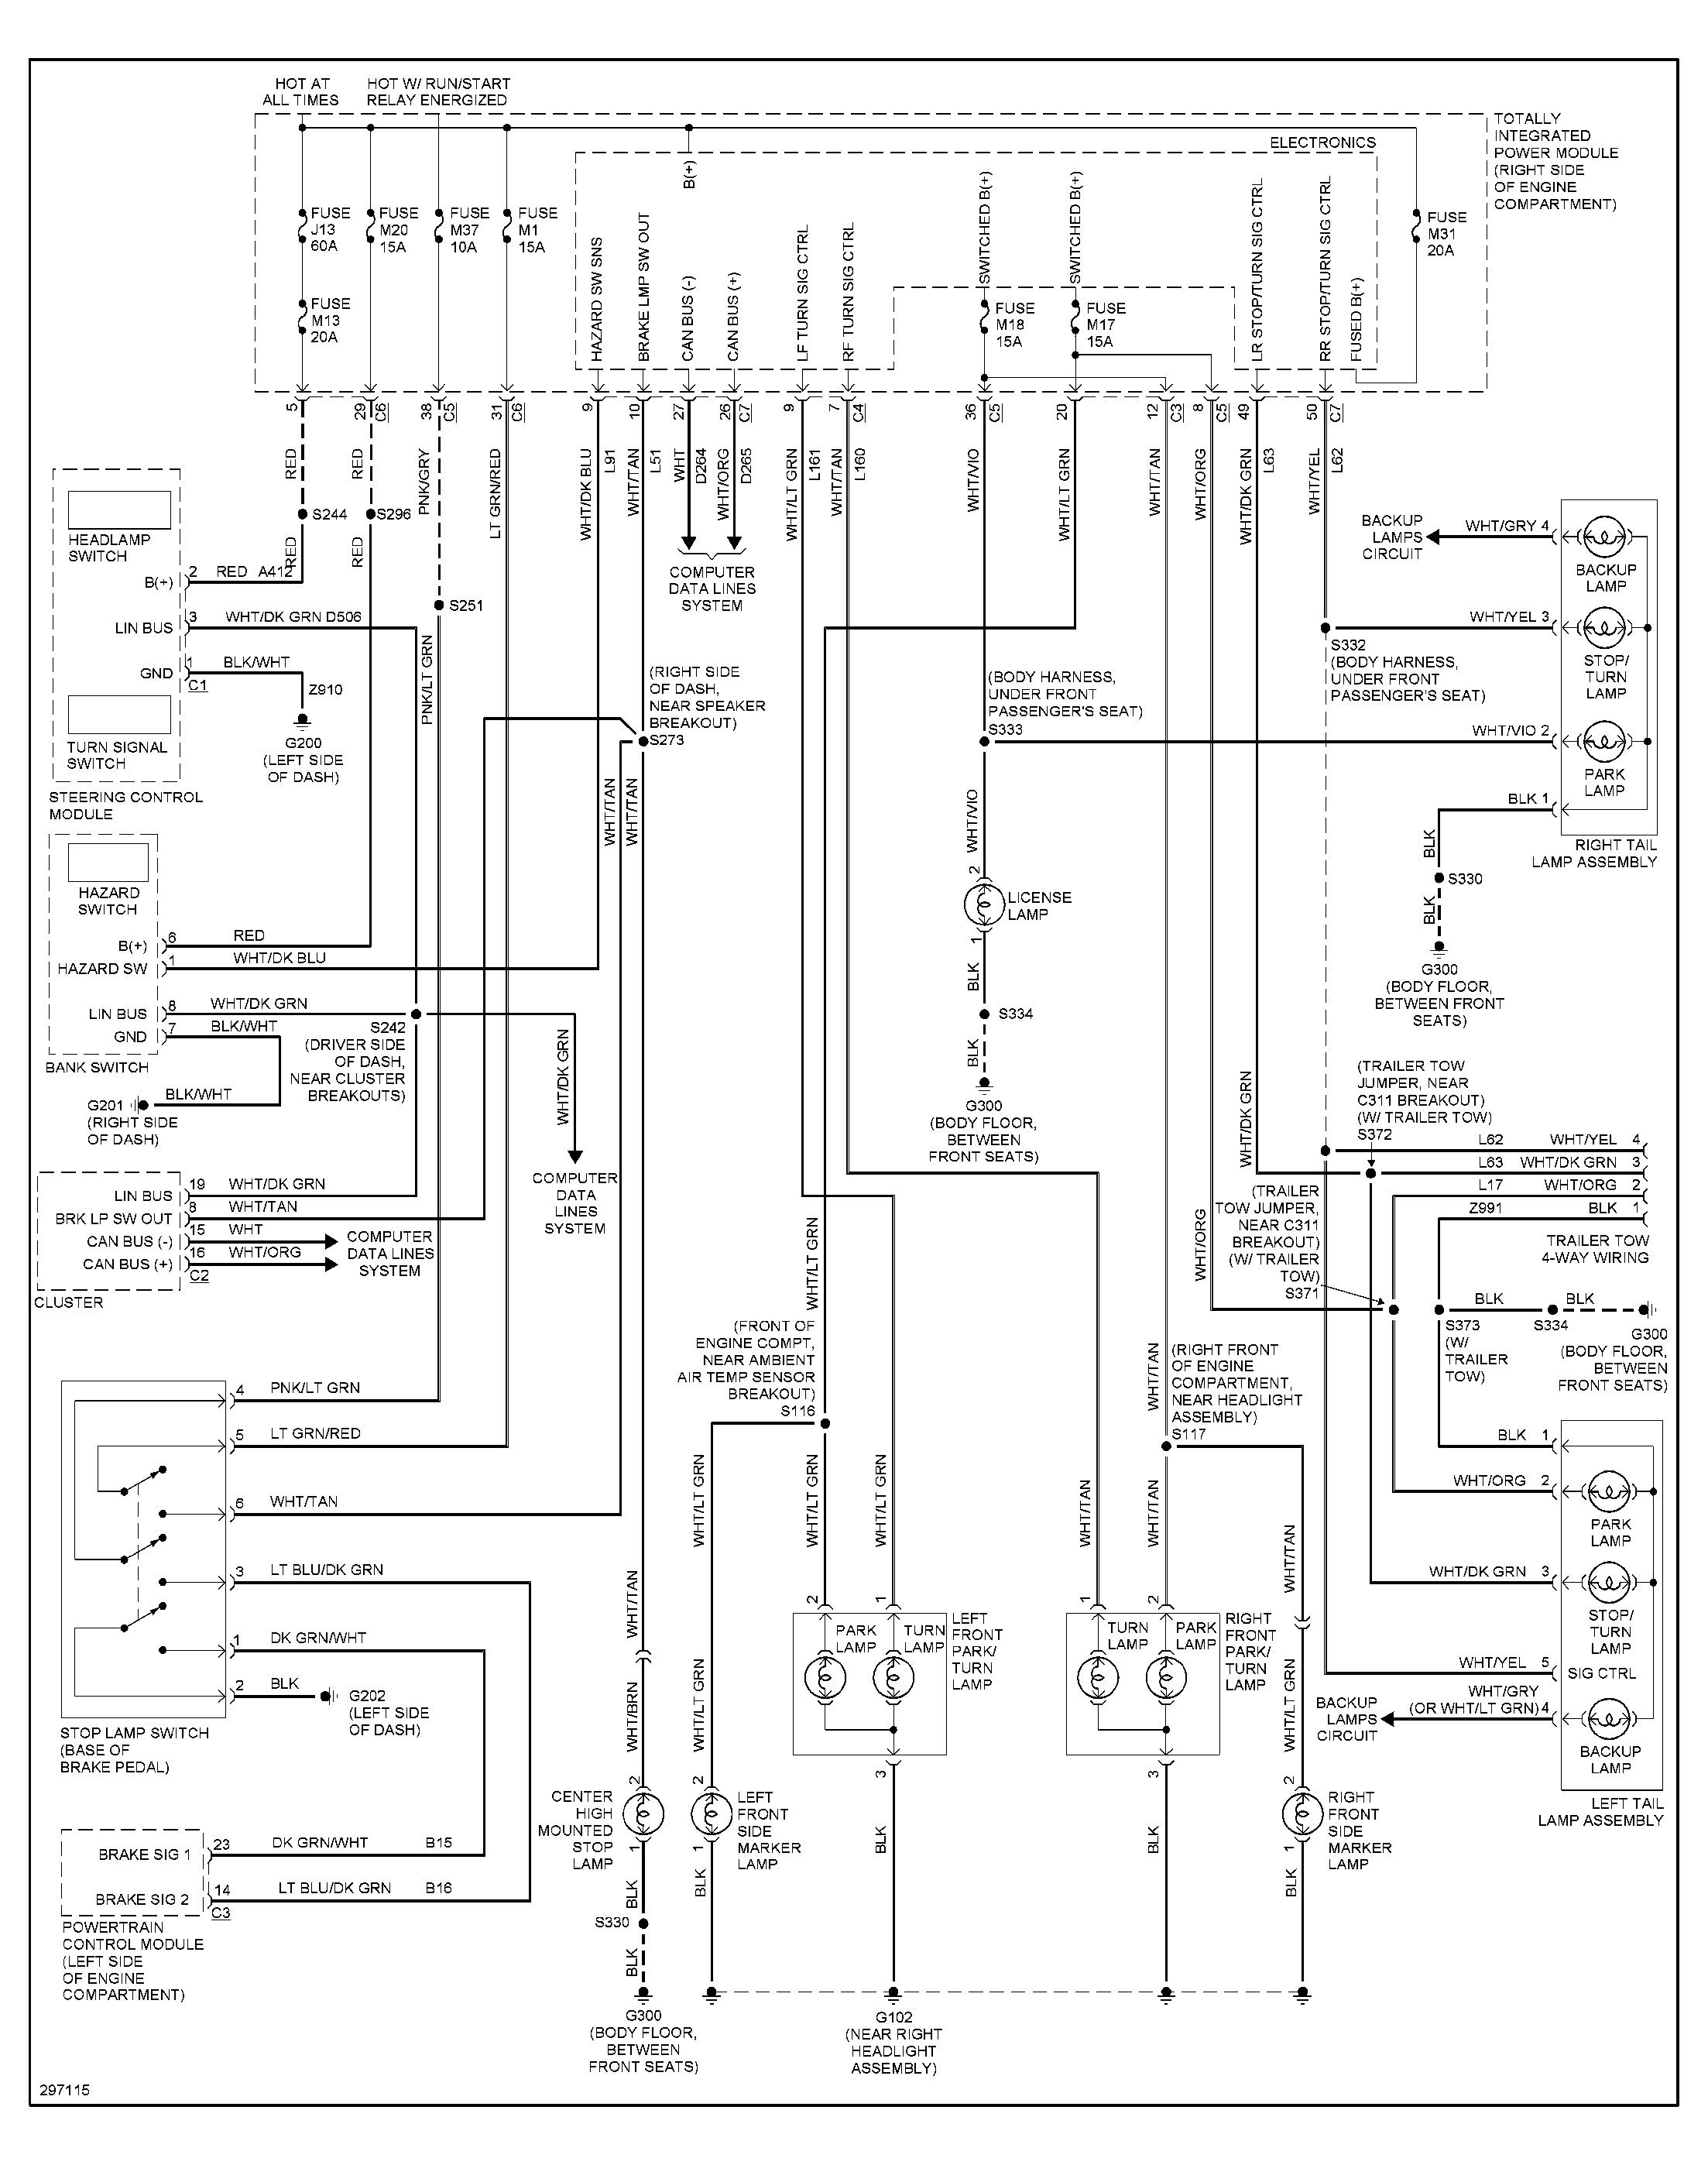 1991 jeep yj tailight wiring-diagram in 2021 | jeep grand cherokee, jeep  wrangler, jeep grand  pinterest